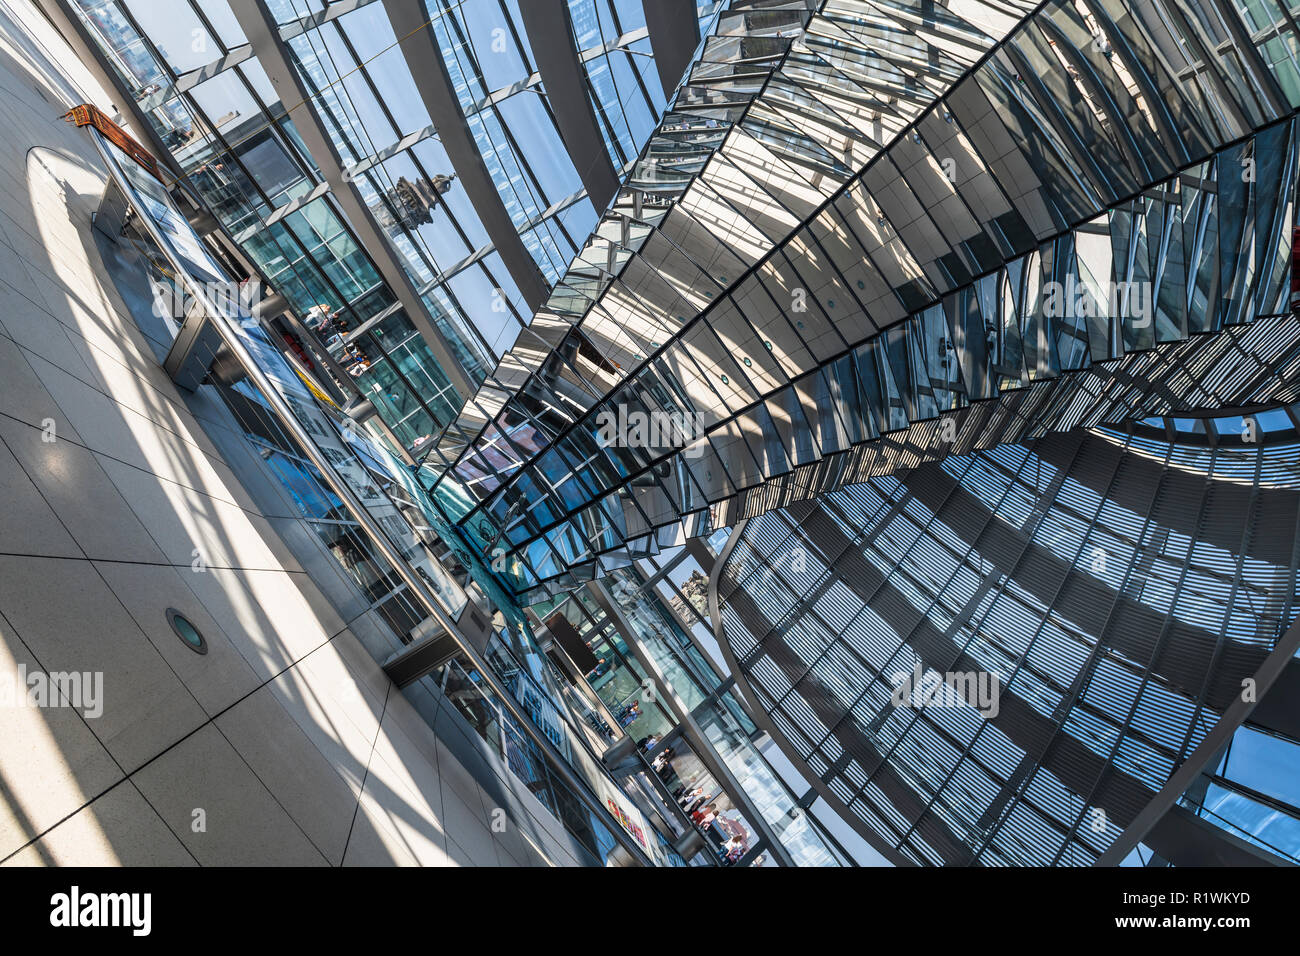 The inside of the dome on top of the Reichstag building in Berlin, Germany. - Stock Image